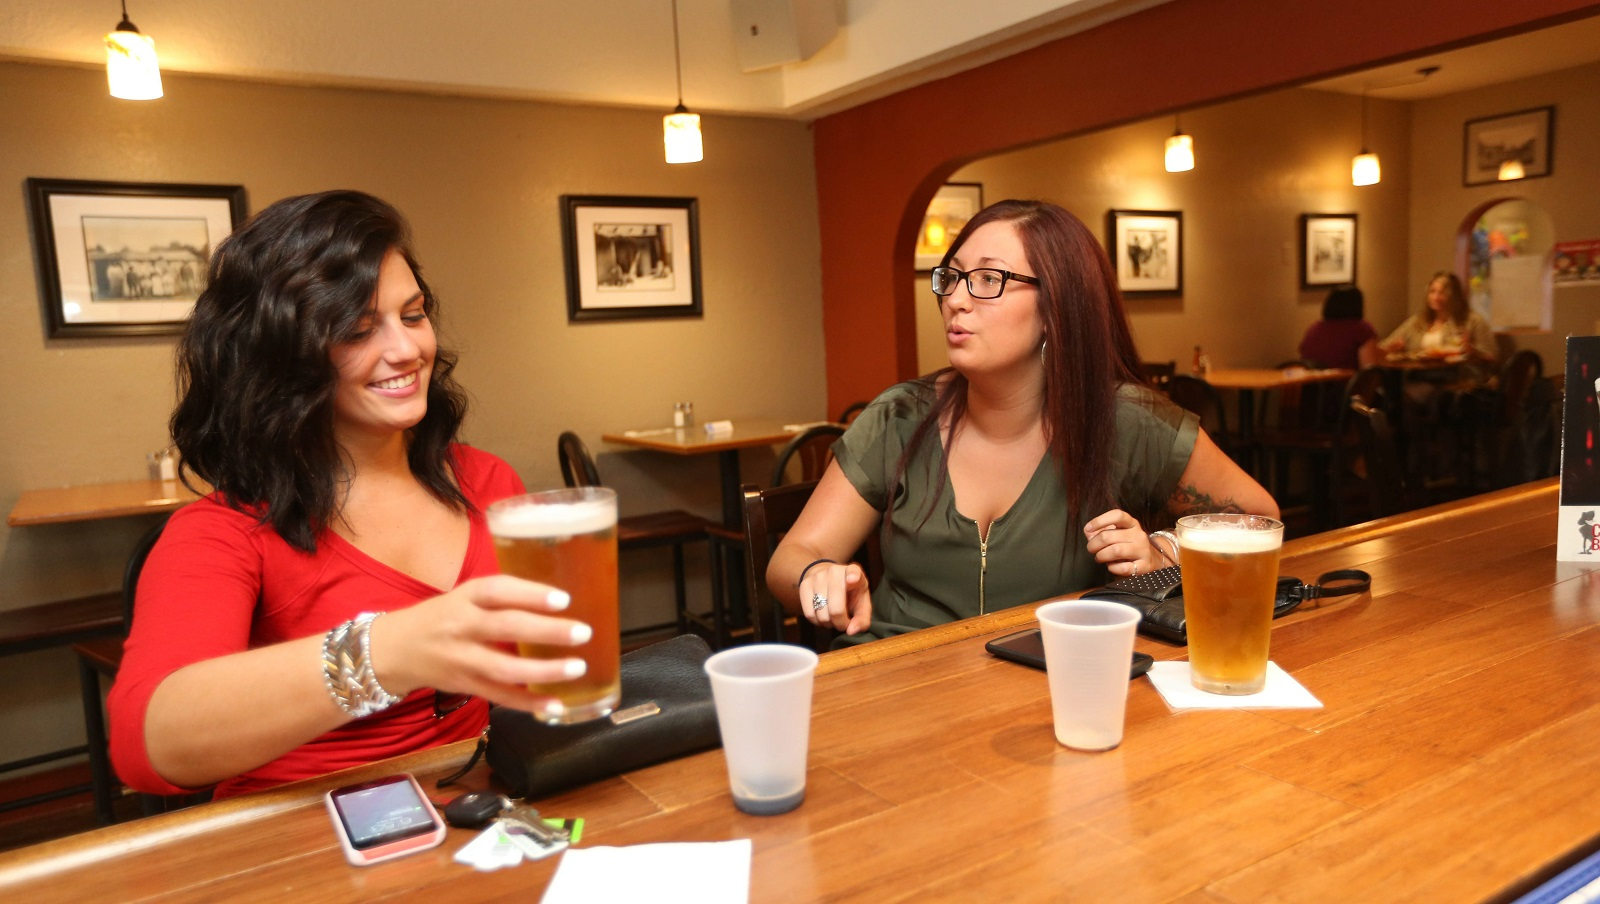 Alexa Fleming of Eden and Justice Ring of Hamburg have a couple of beers at Coyote Cafe in Hamburg. (Sharon Cantillon/Buffalo News)